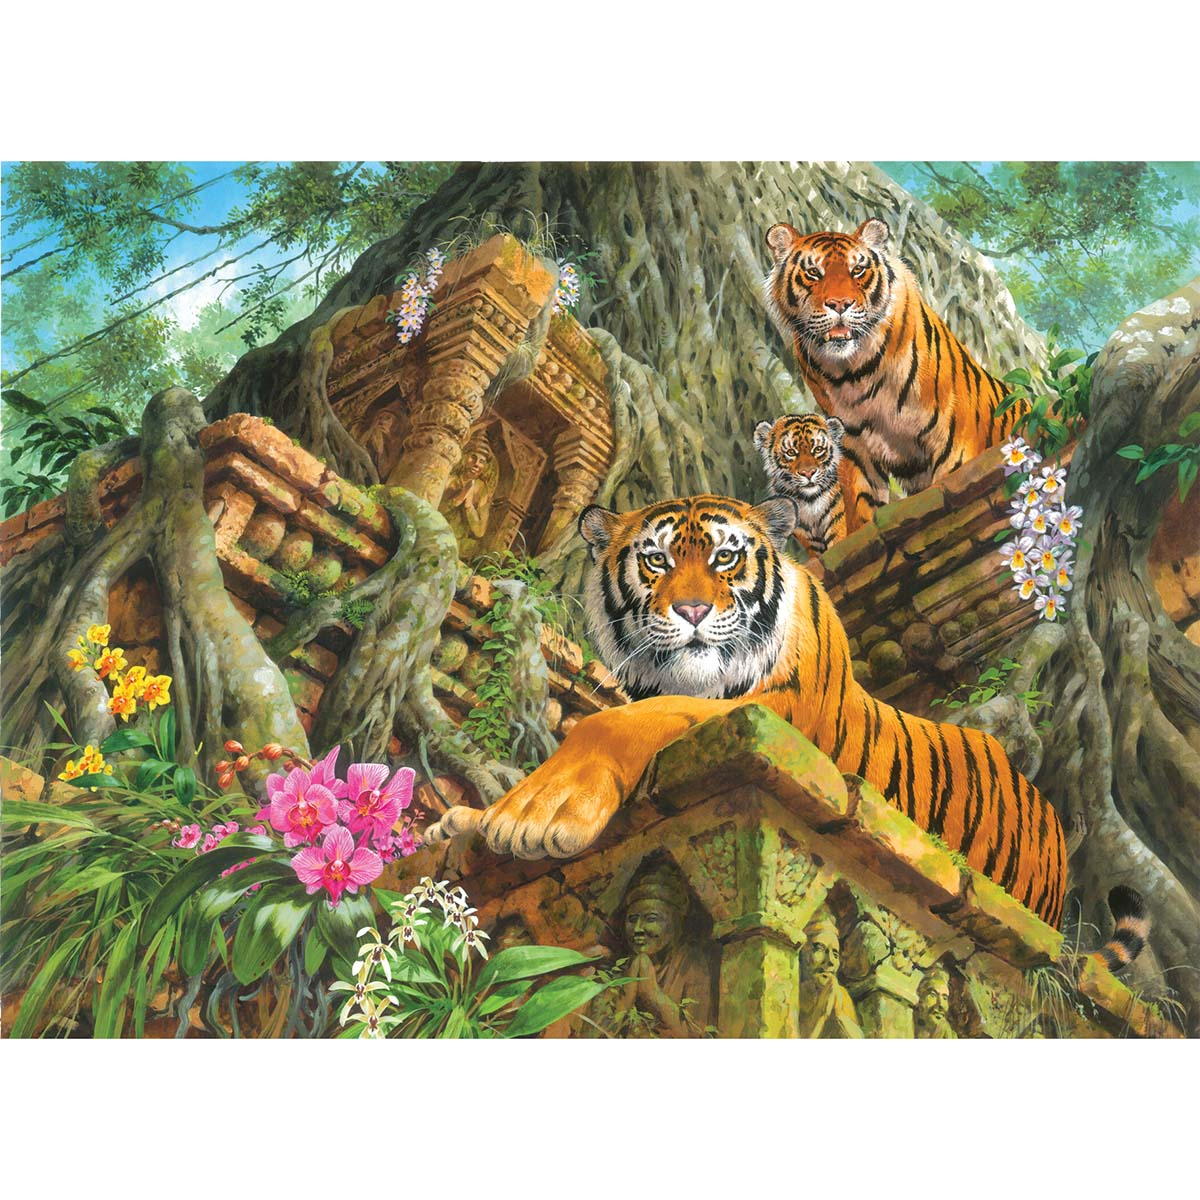 Perre Temple Tigers Jigsaw Puzzle